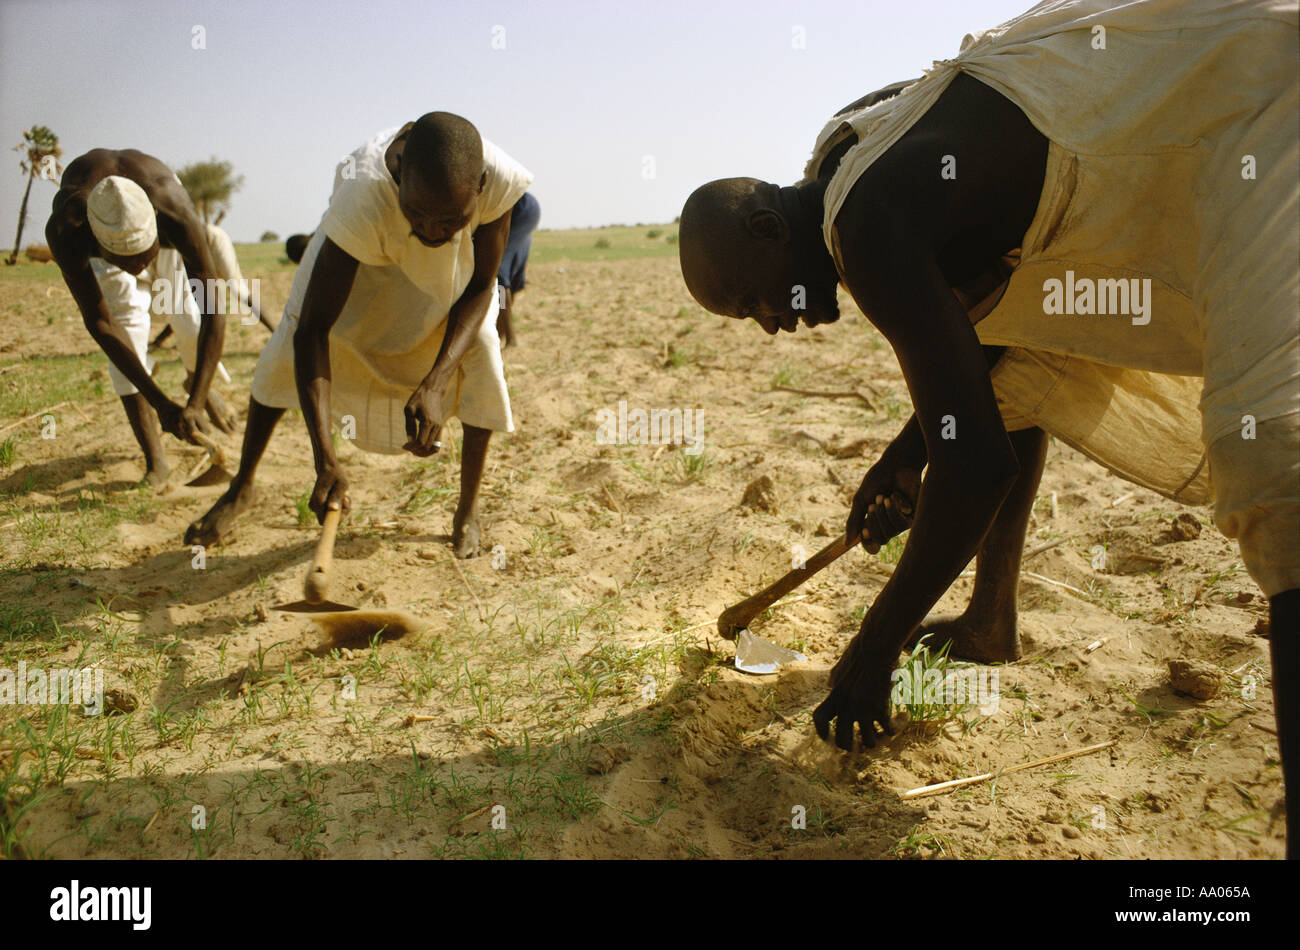 Africa Chad islands of Lake Chad Buduma men weeding millet field with hoe - Stock Image